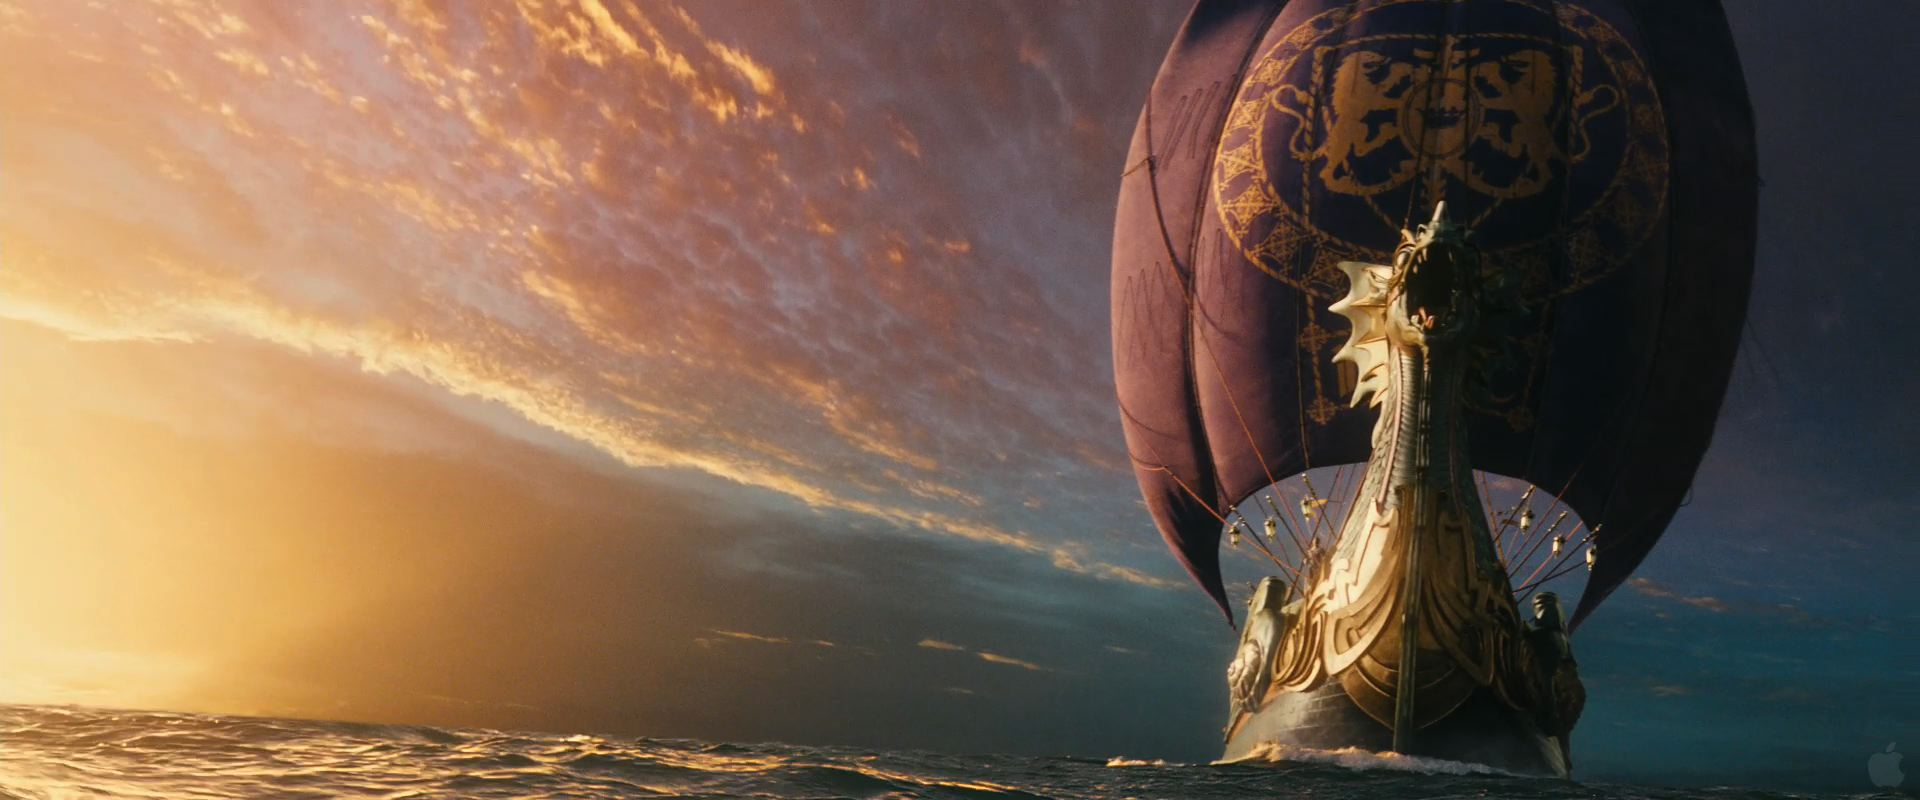 1920x800 - The Chronicles of Narnia: The Voyage of the Dawn Treader Wallpapers 13